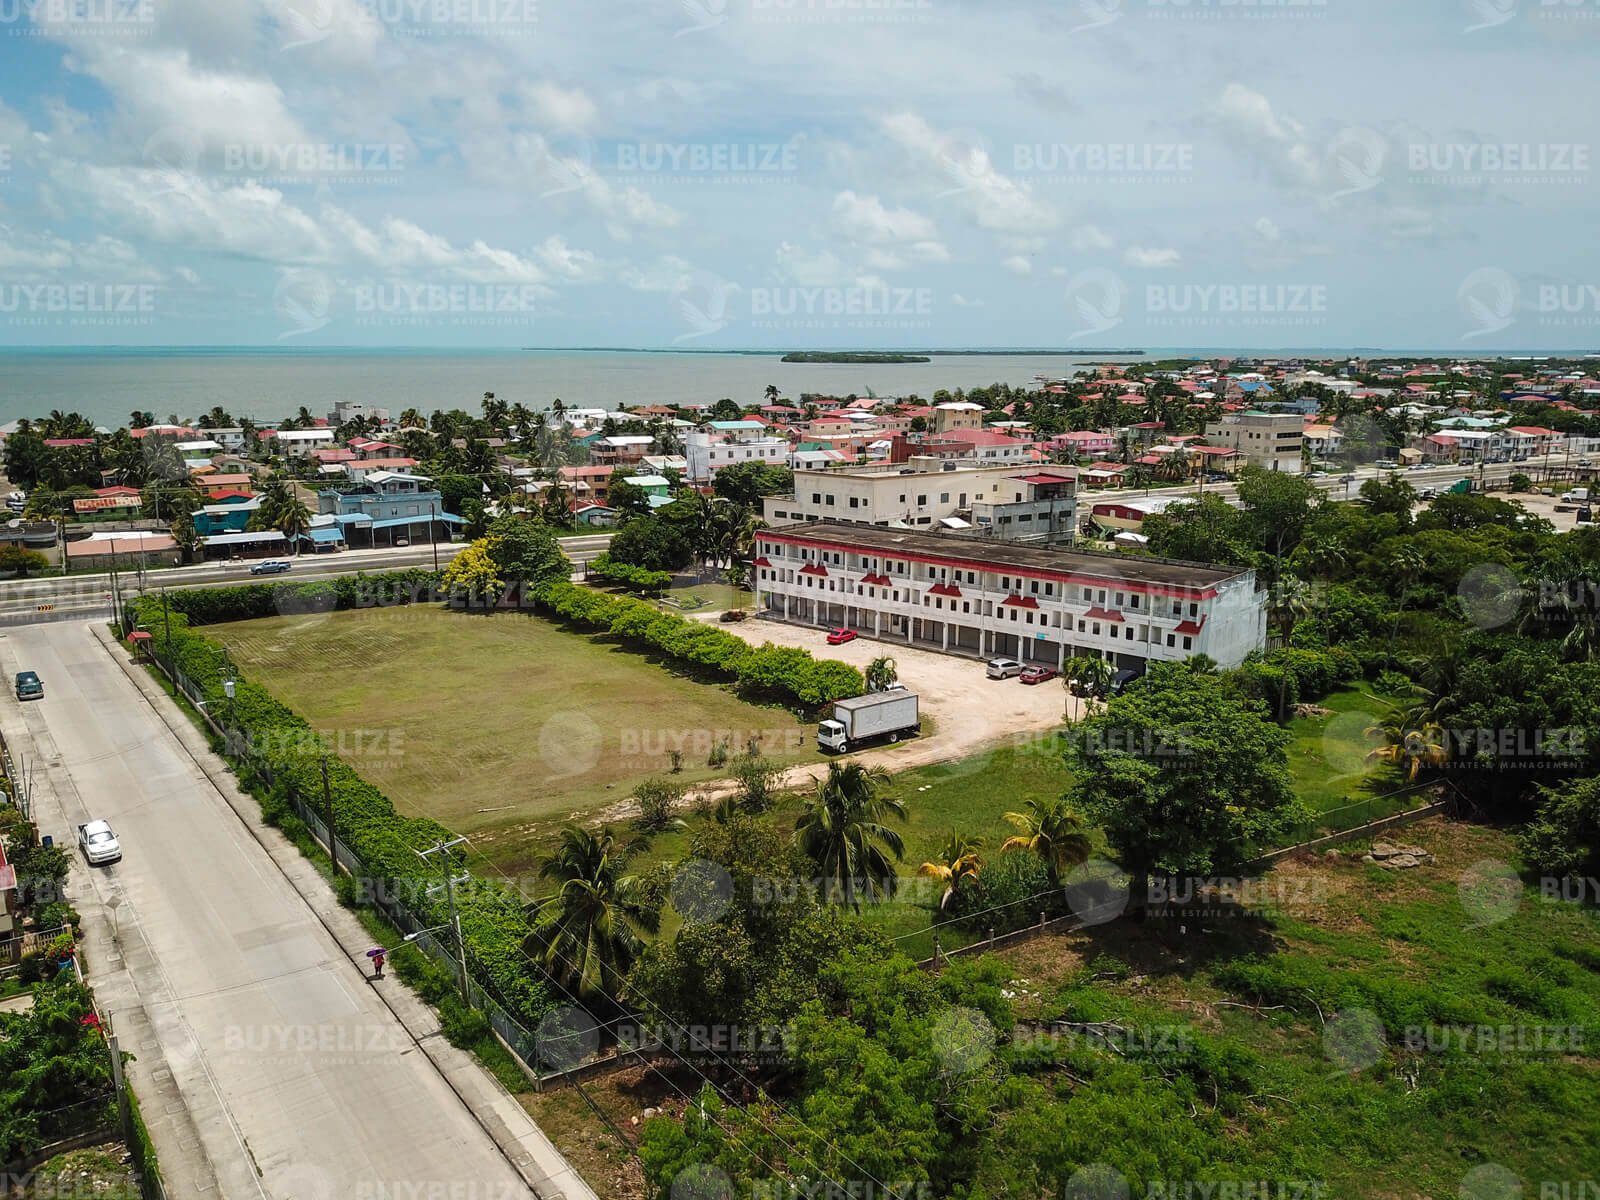 Commercial Business Location in Belize City